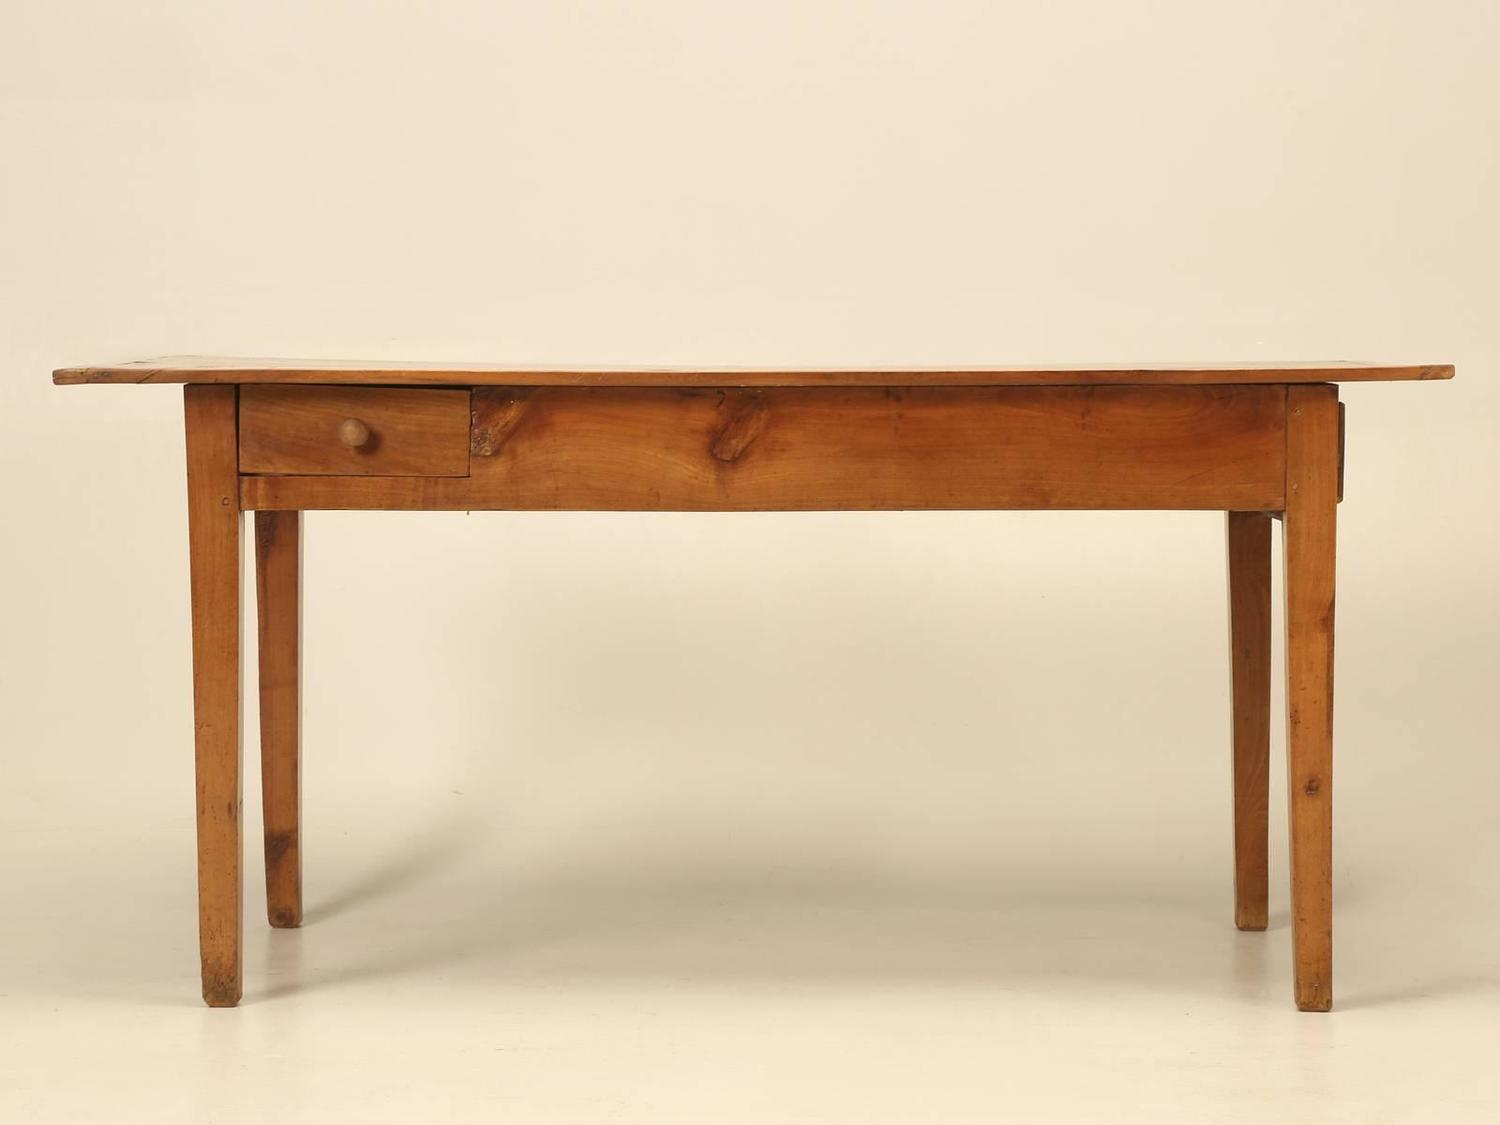 French Farm Or Dining Table For Sale At 1stdibs